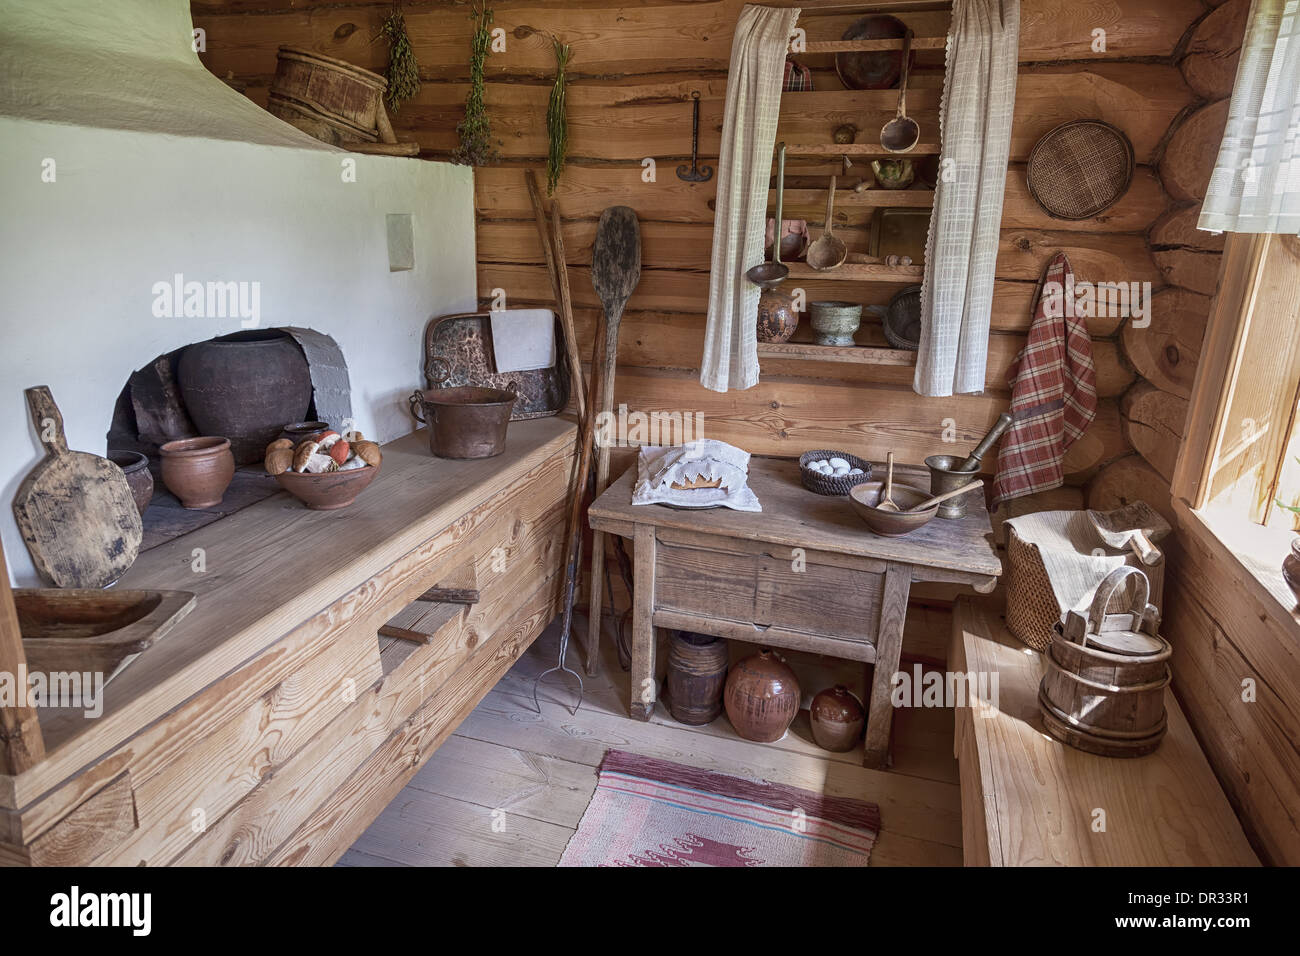 The interior of the museum Suvorov. Russian traditional kitchen with stove. Generalissimo A. Suvorov is a great russian warlord - Stock Image